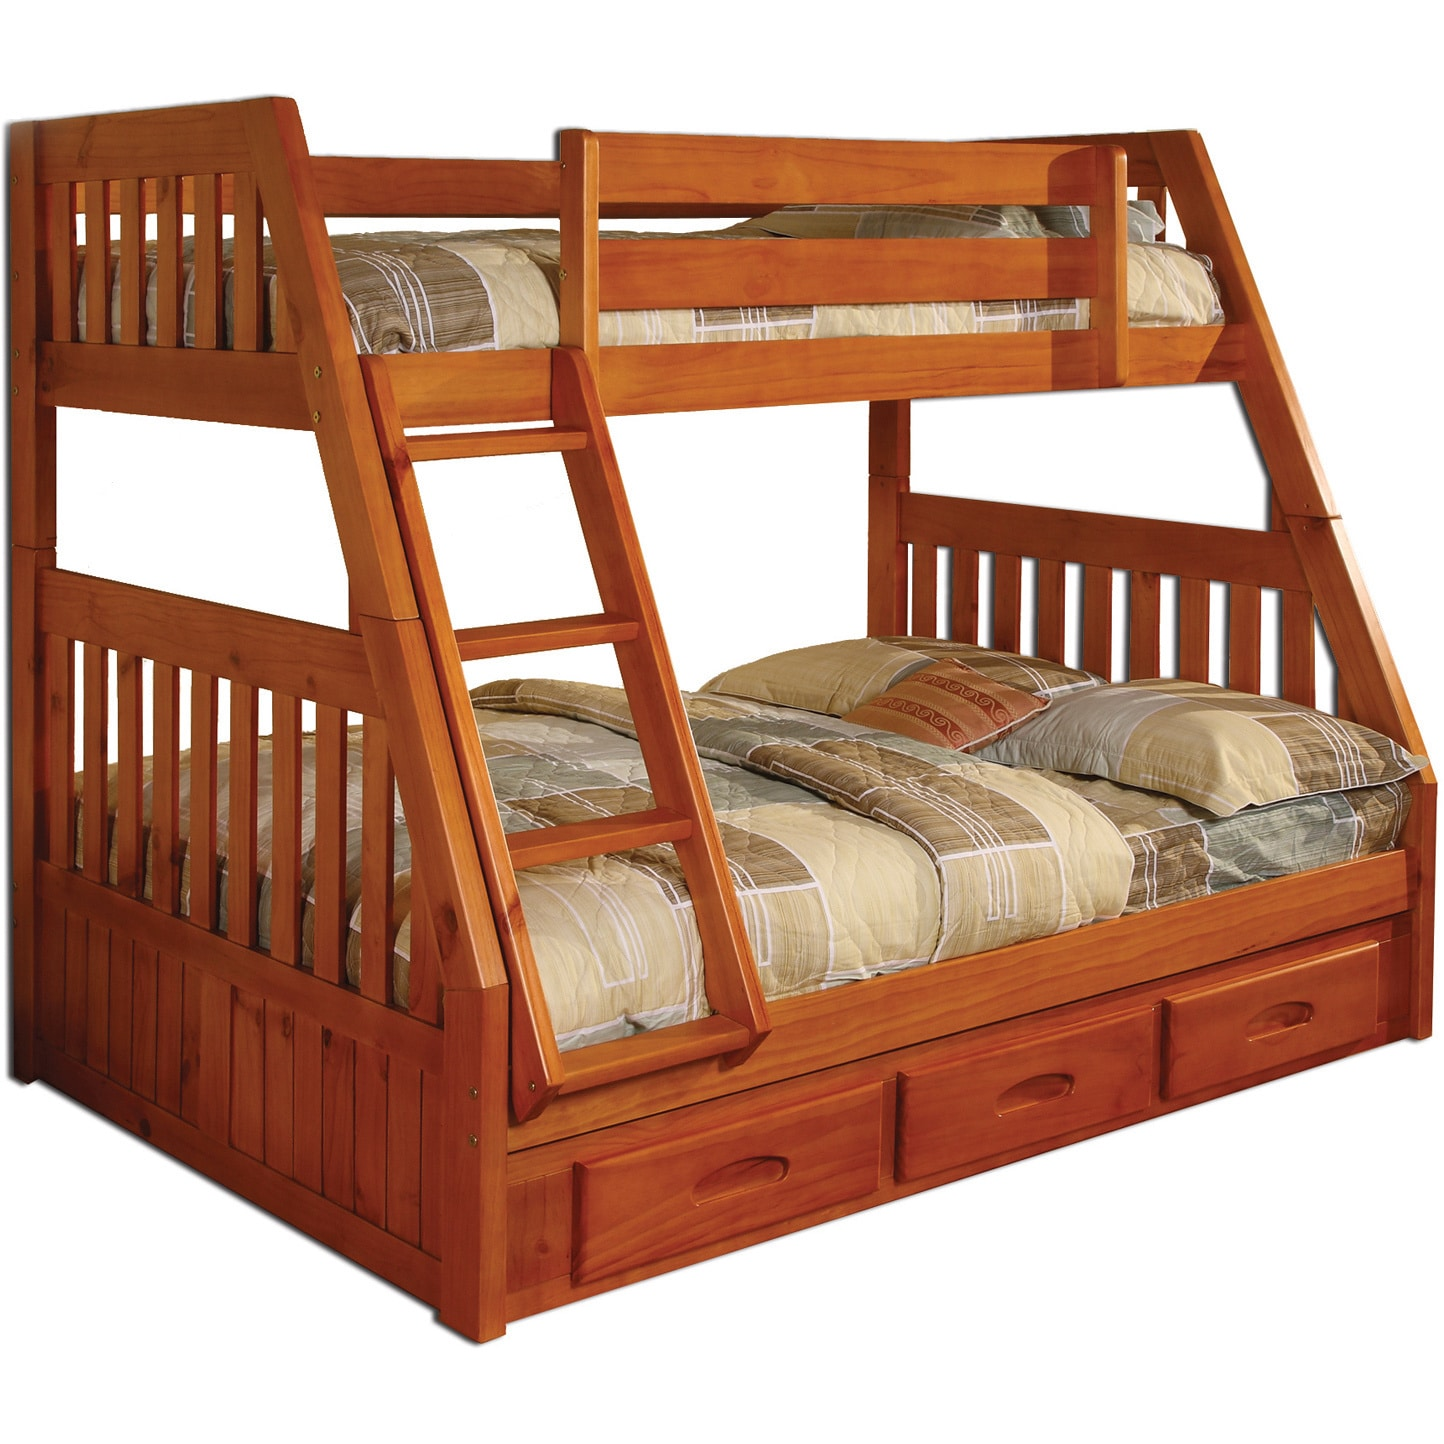 Shop Solid Pine Twin Over Full Bunk Bed With Drawers Free Shipping